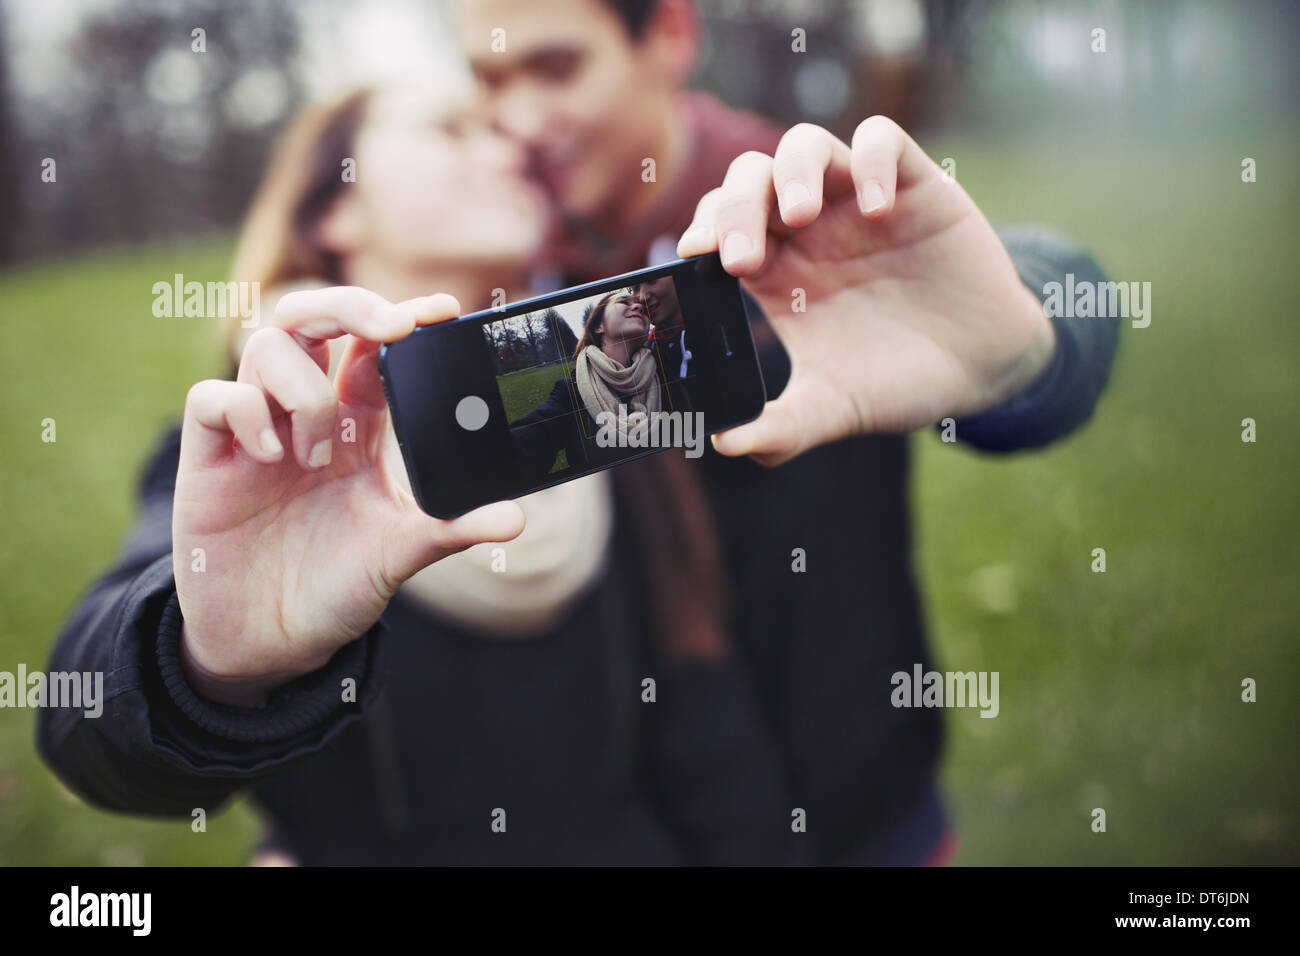 Teenage romantique couple taking self portrait with cell phone au parc. Jeune homme et femme dans l'amour. Photo Stock